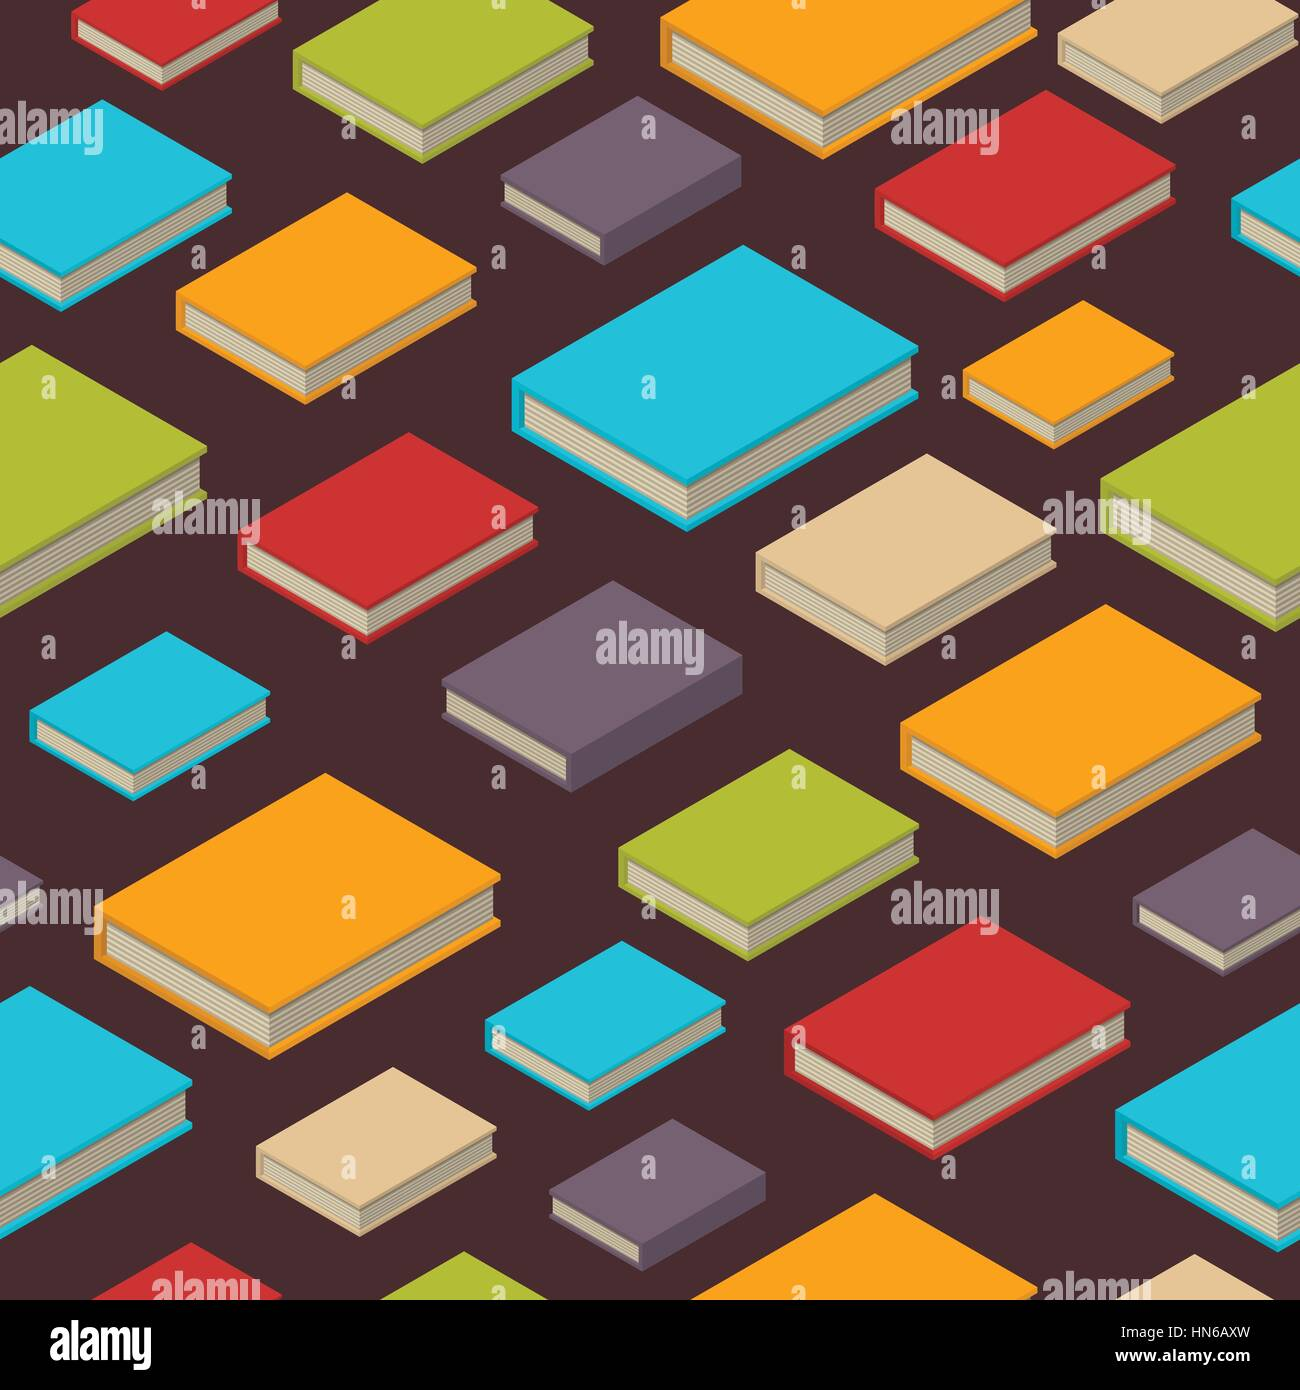 Seamless Pattern Of New 3d Colorful Books And Tutorials